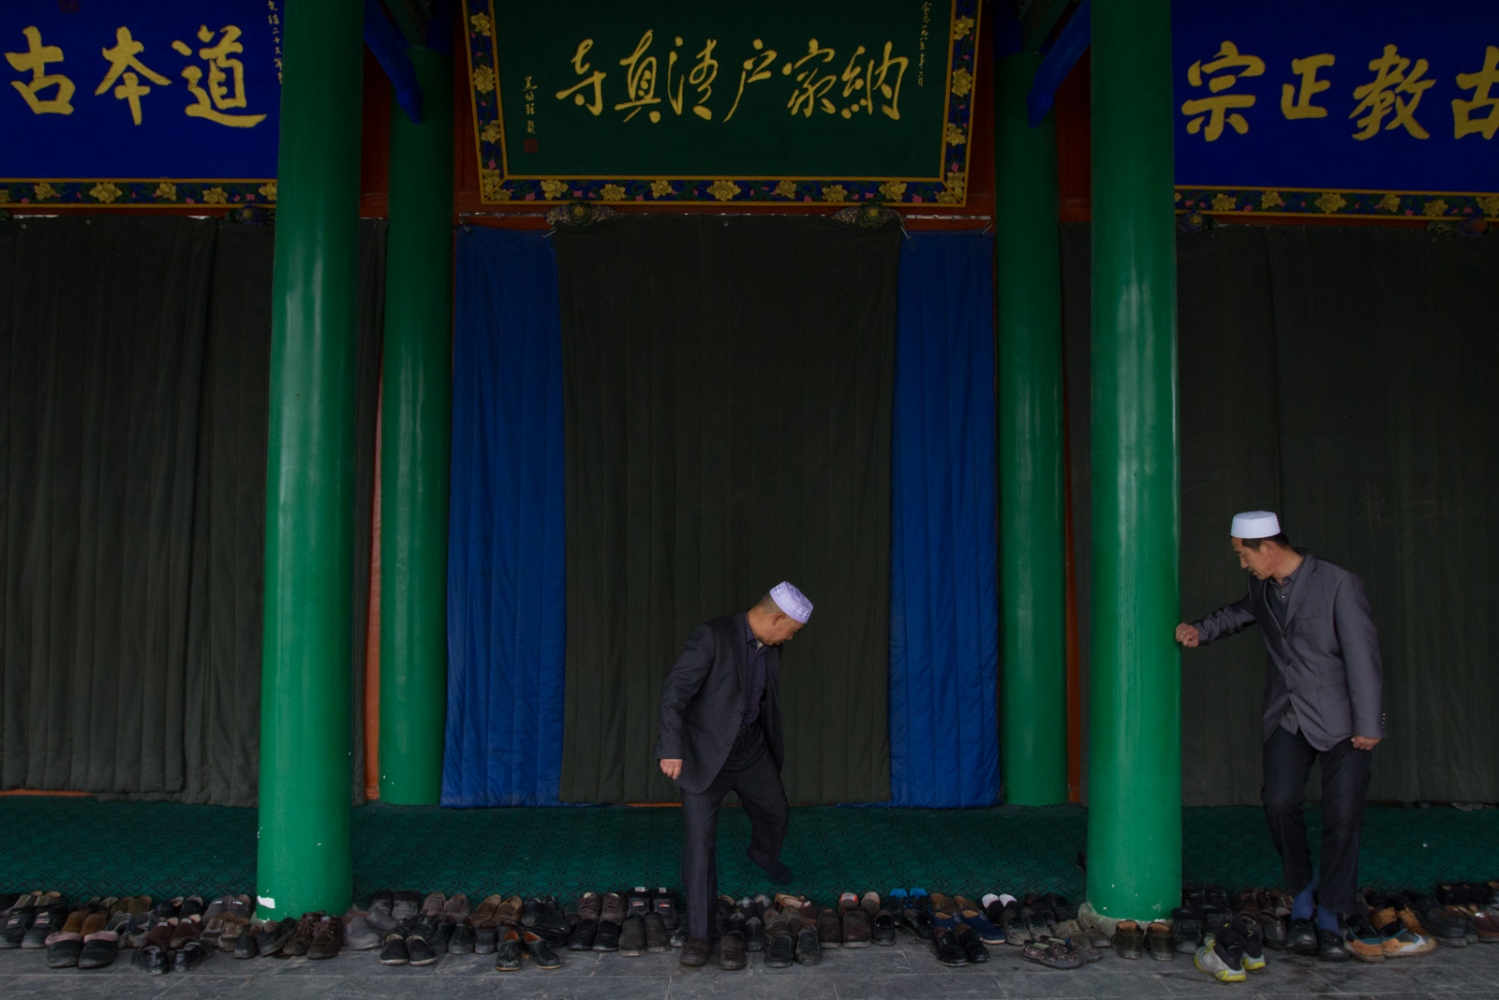 Two men leave their shoes at the entrance to the main prayer hall of Najiahu Mosque.